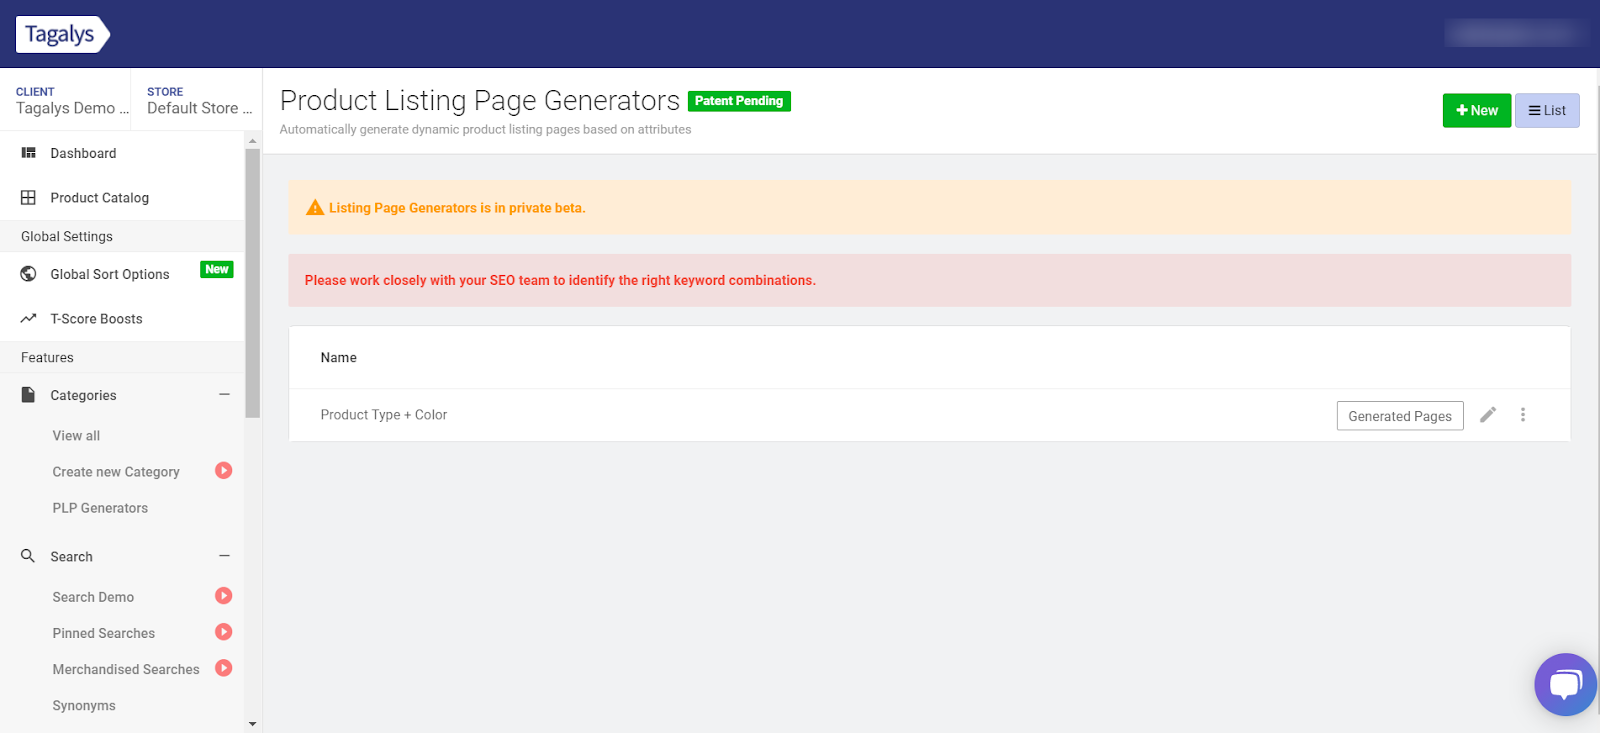 Product Listing Page Generators in Tagalys